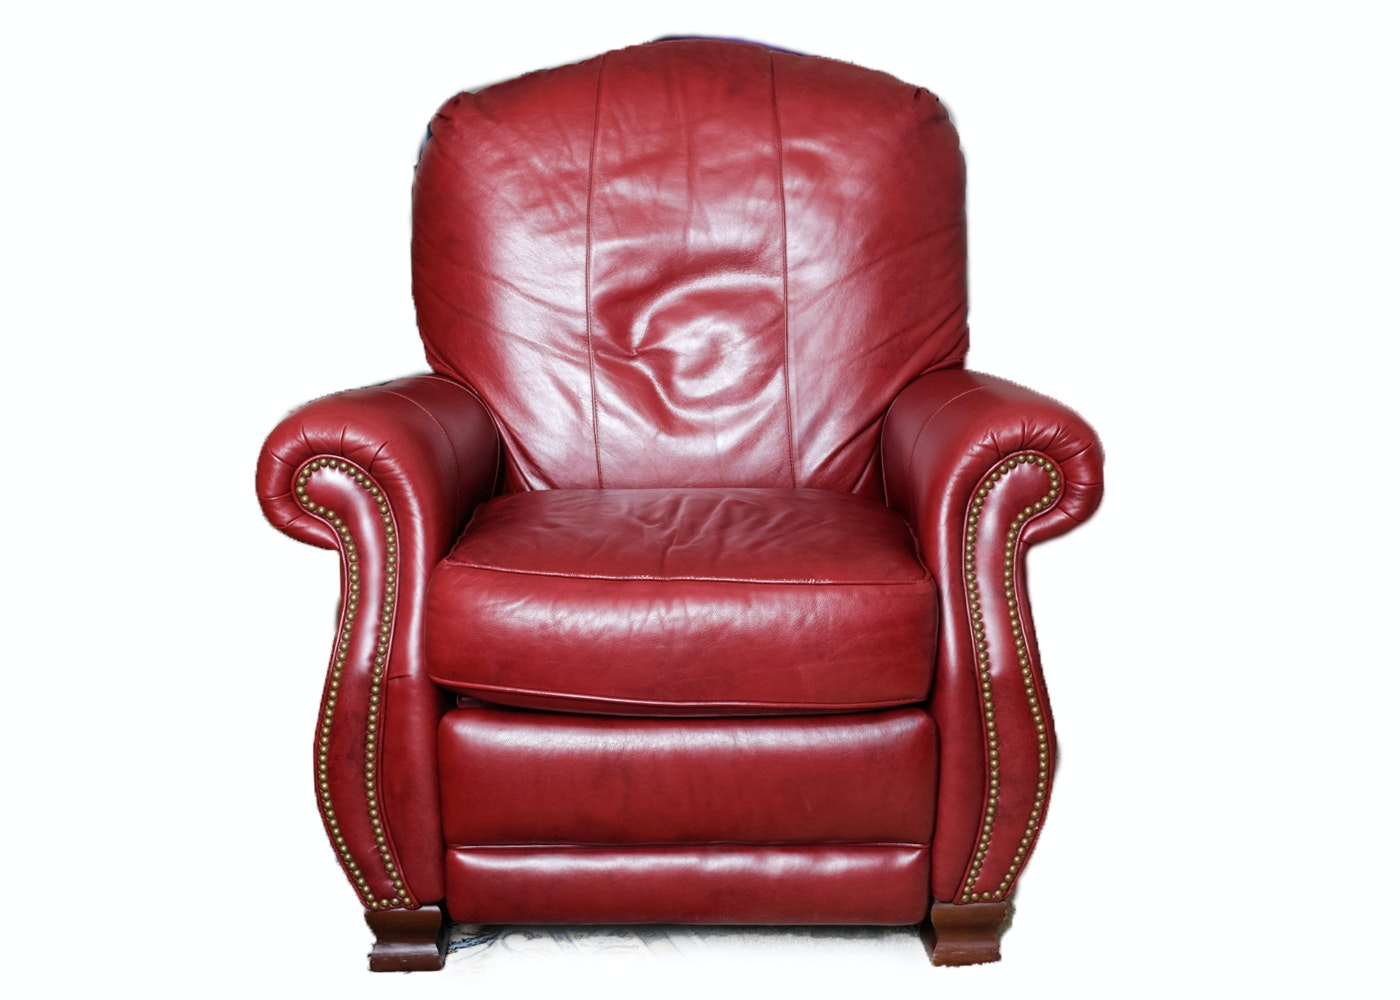 Bradington Young Red Leather Recliner ...  sc 1 st  Everything But The House & Bradington Young Red Leather Recliner : EBTH islam-shia.org